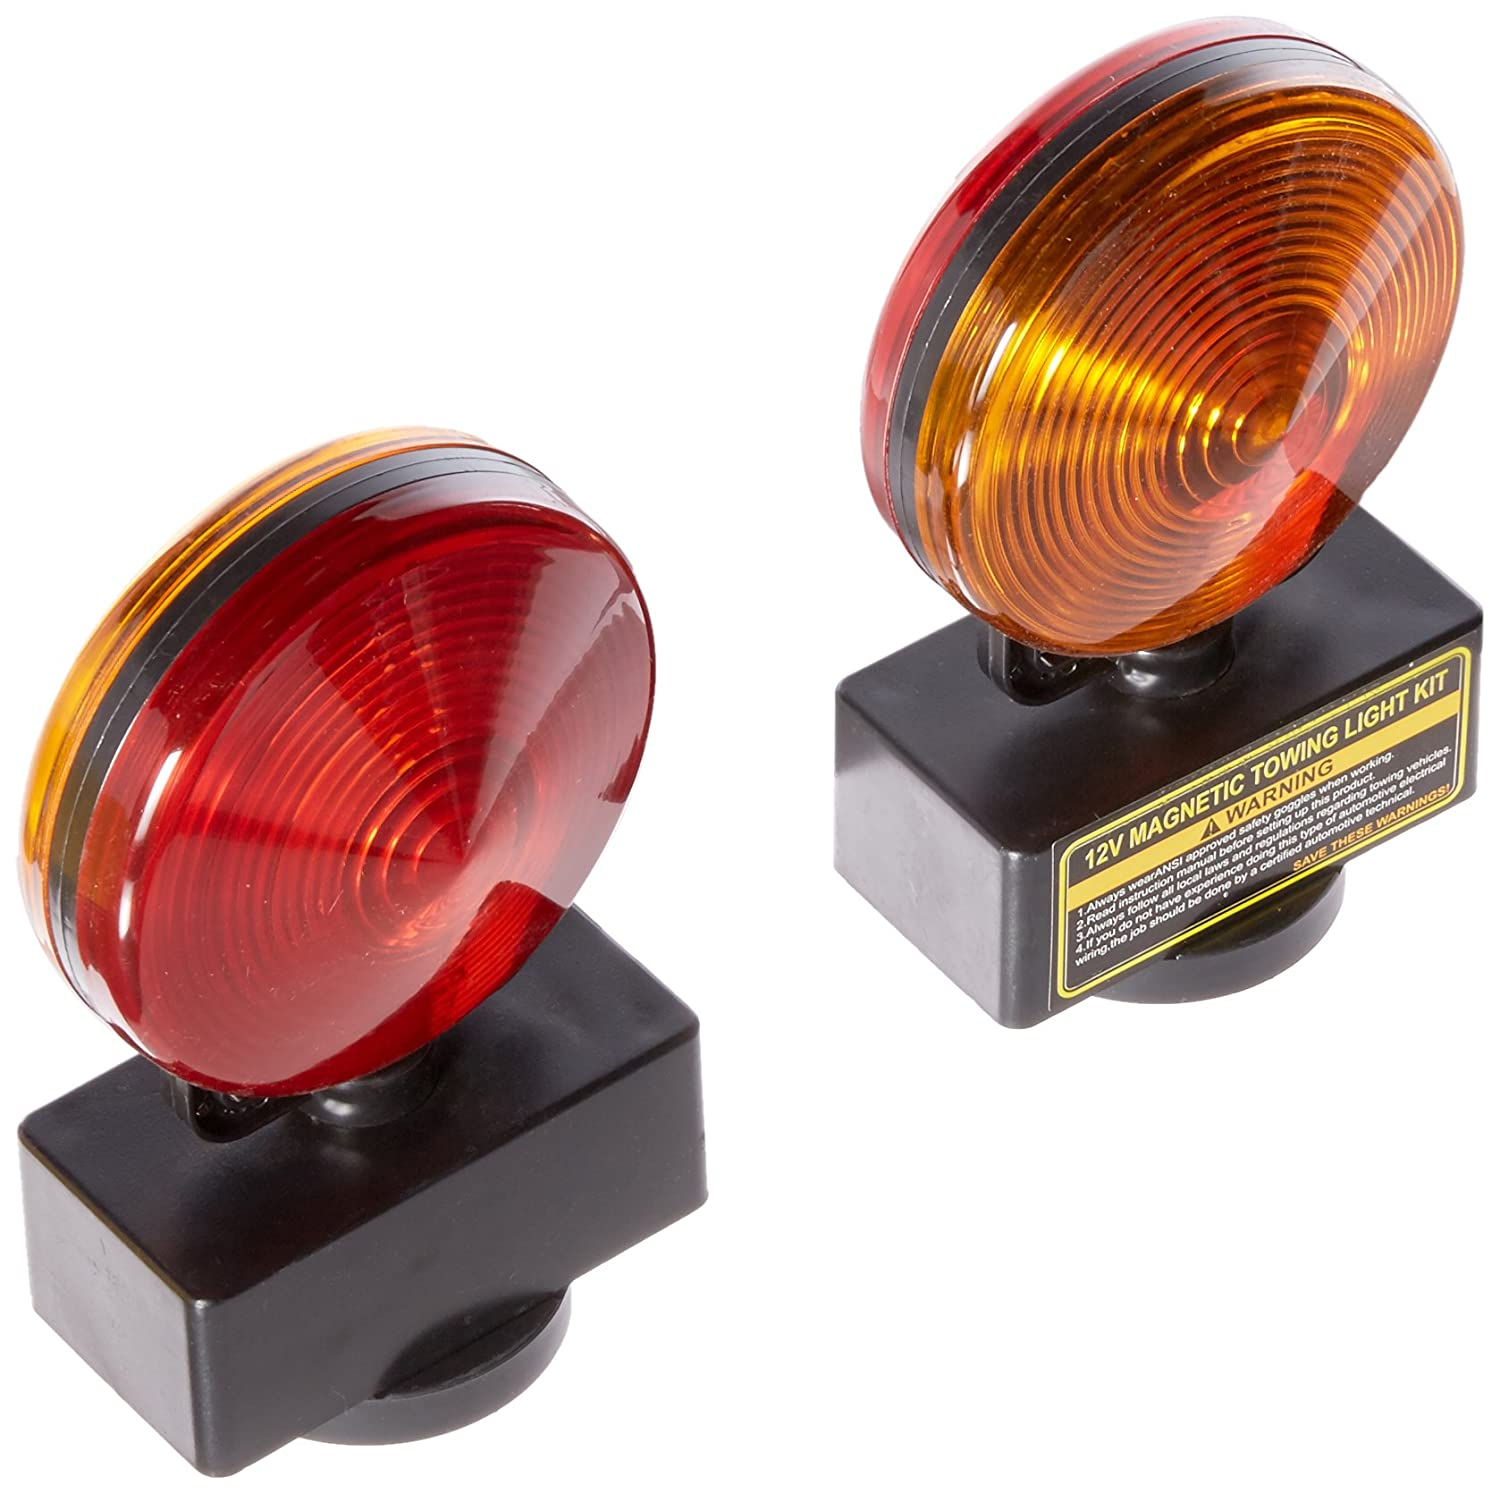 Pit Bull CHIL0115 Magnetic Towing Light, 12V Pitbull